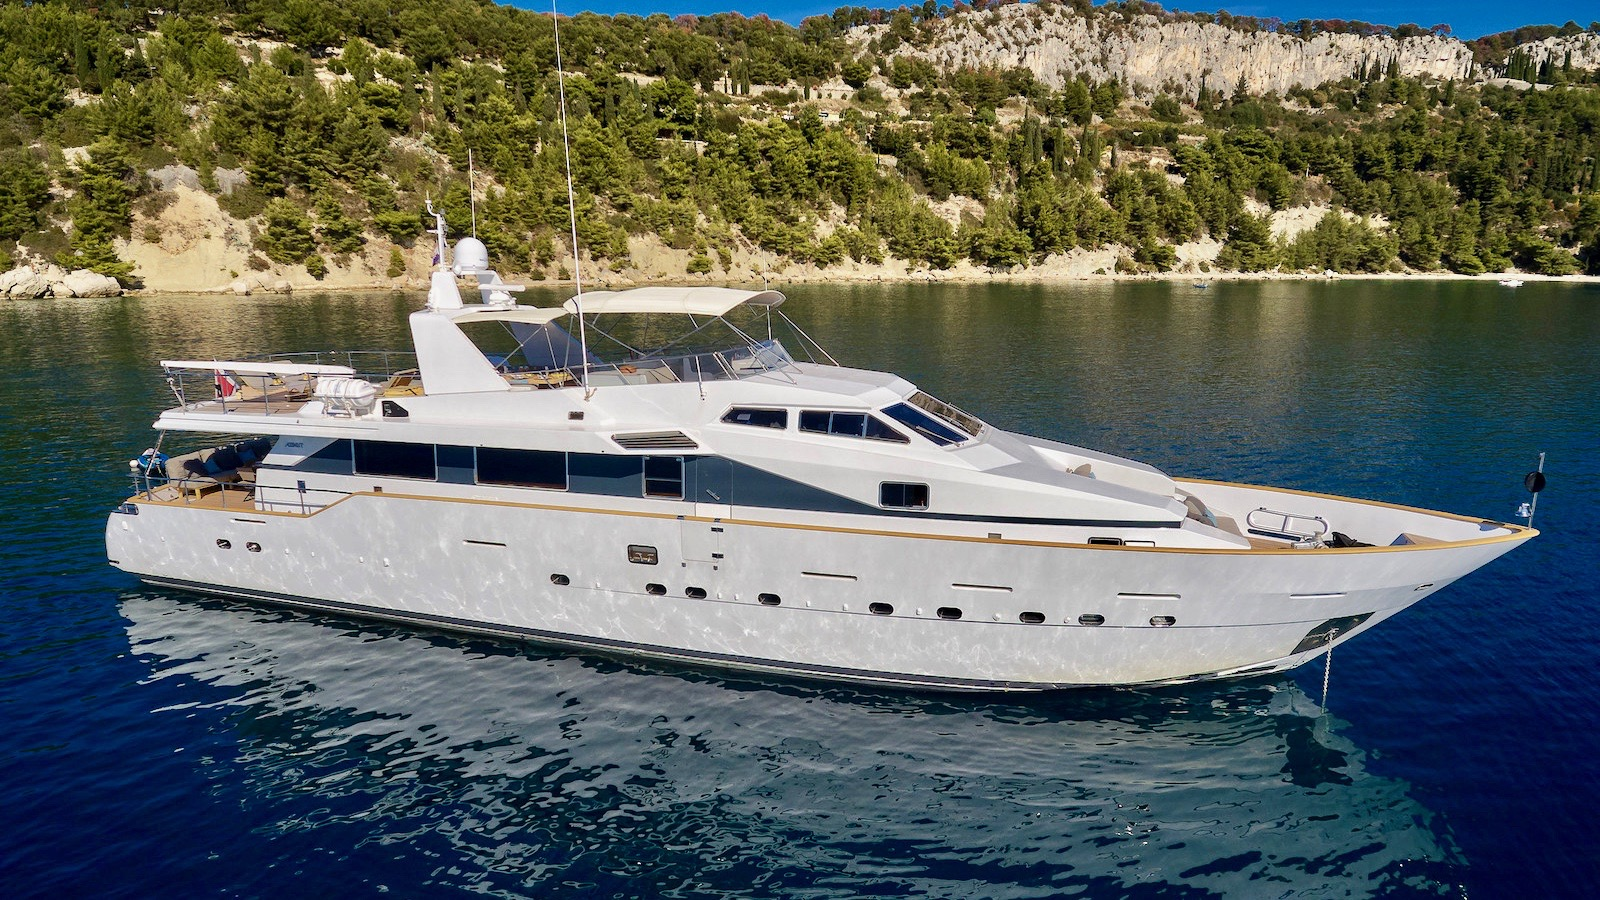 Moonraker II Yacht for Charter - IYC